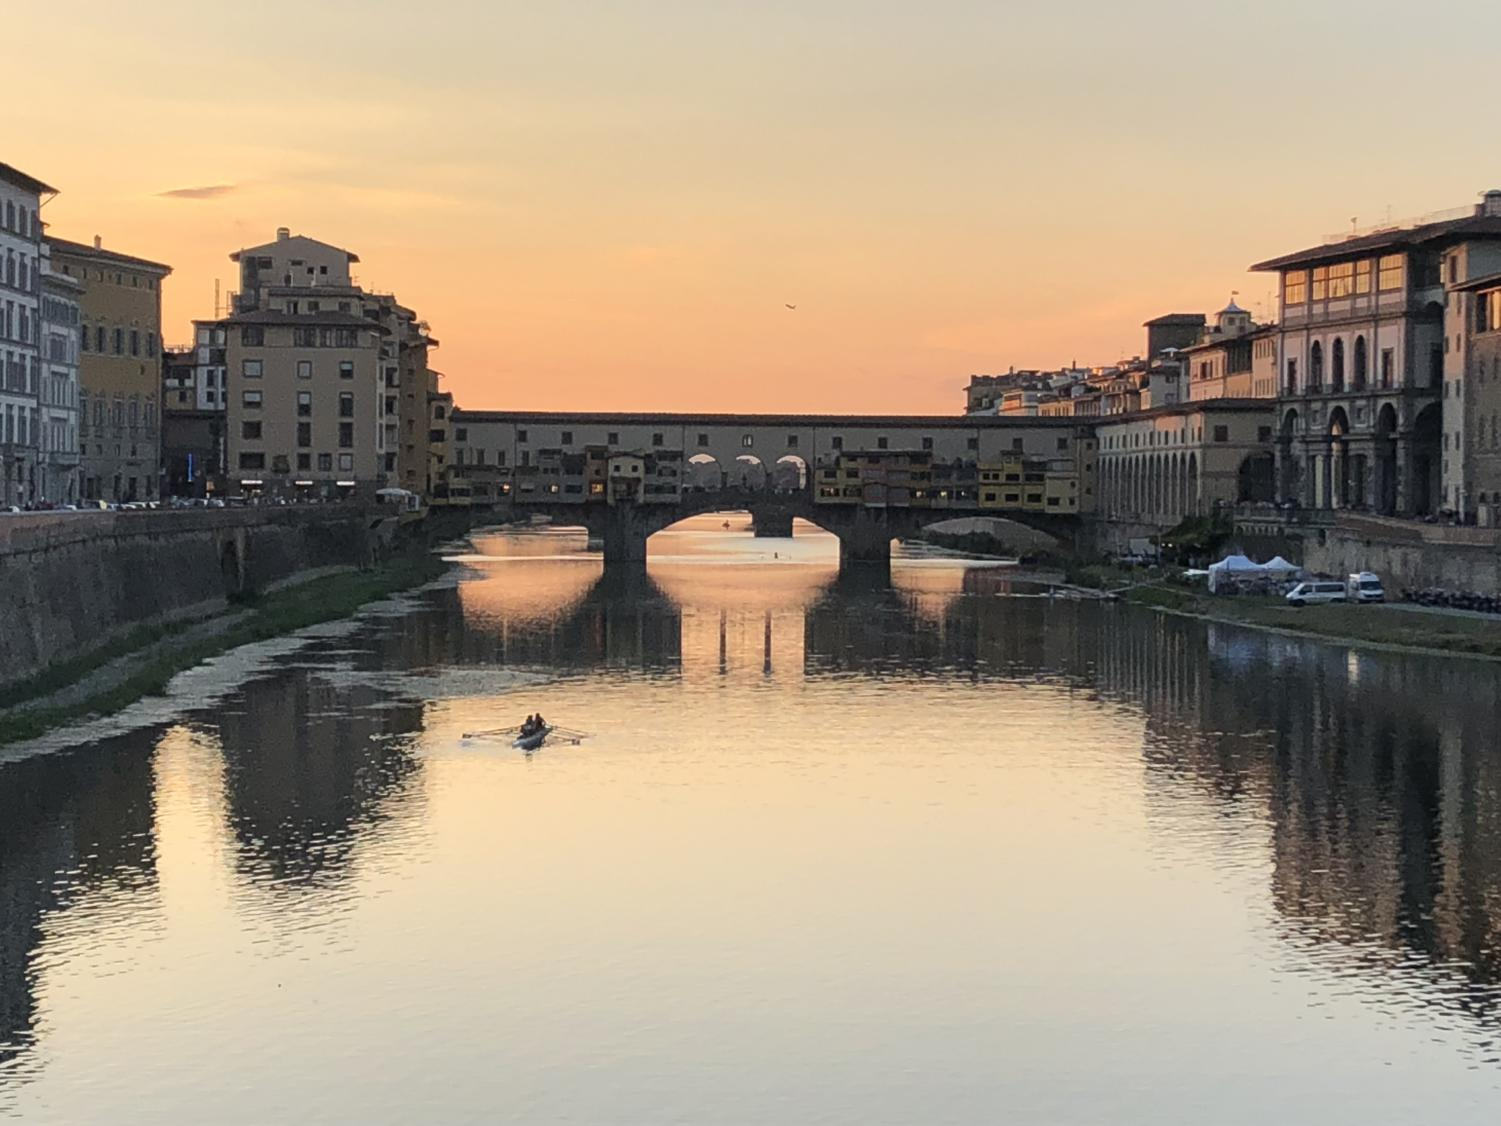 Ponte Vecchio, or the Old Bridge, arches across the Arno river in Florence.